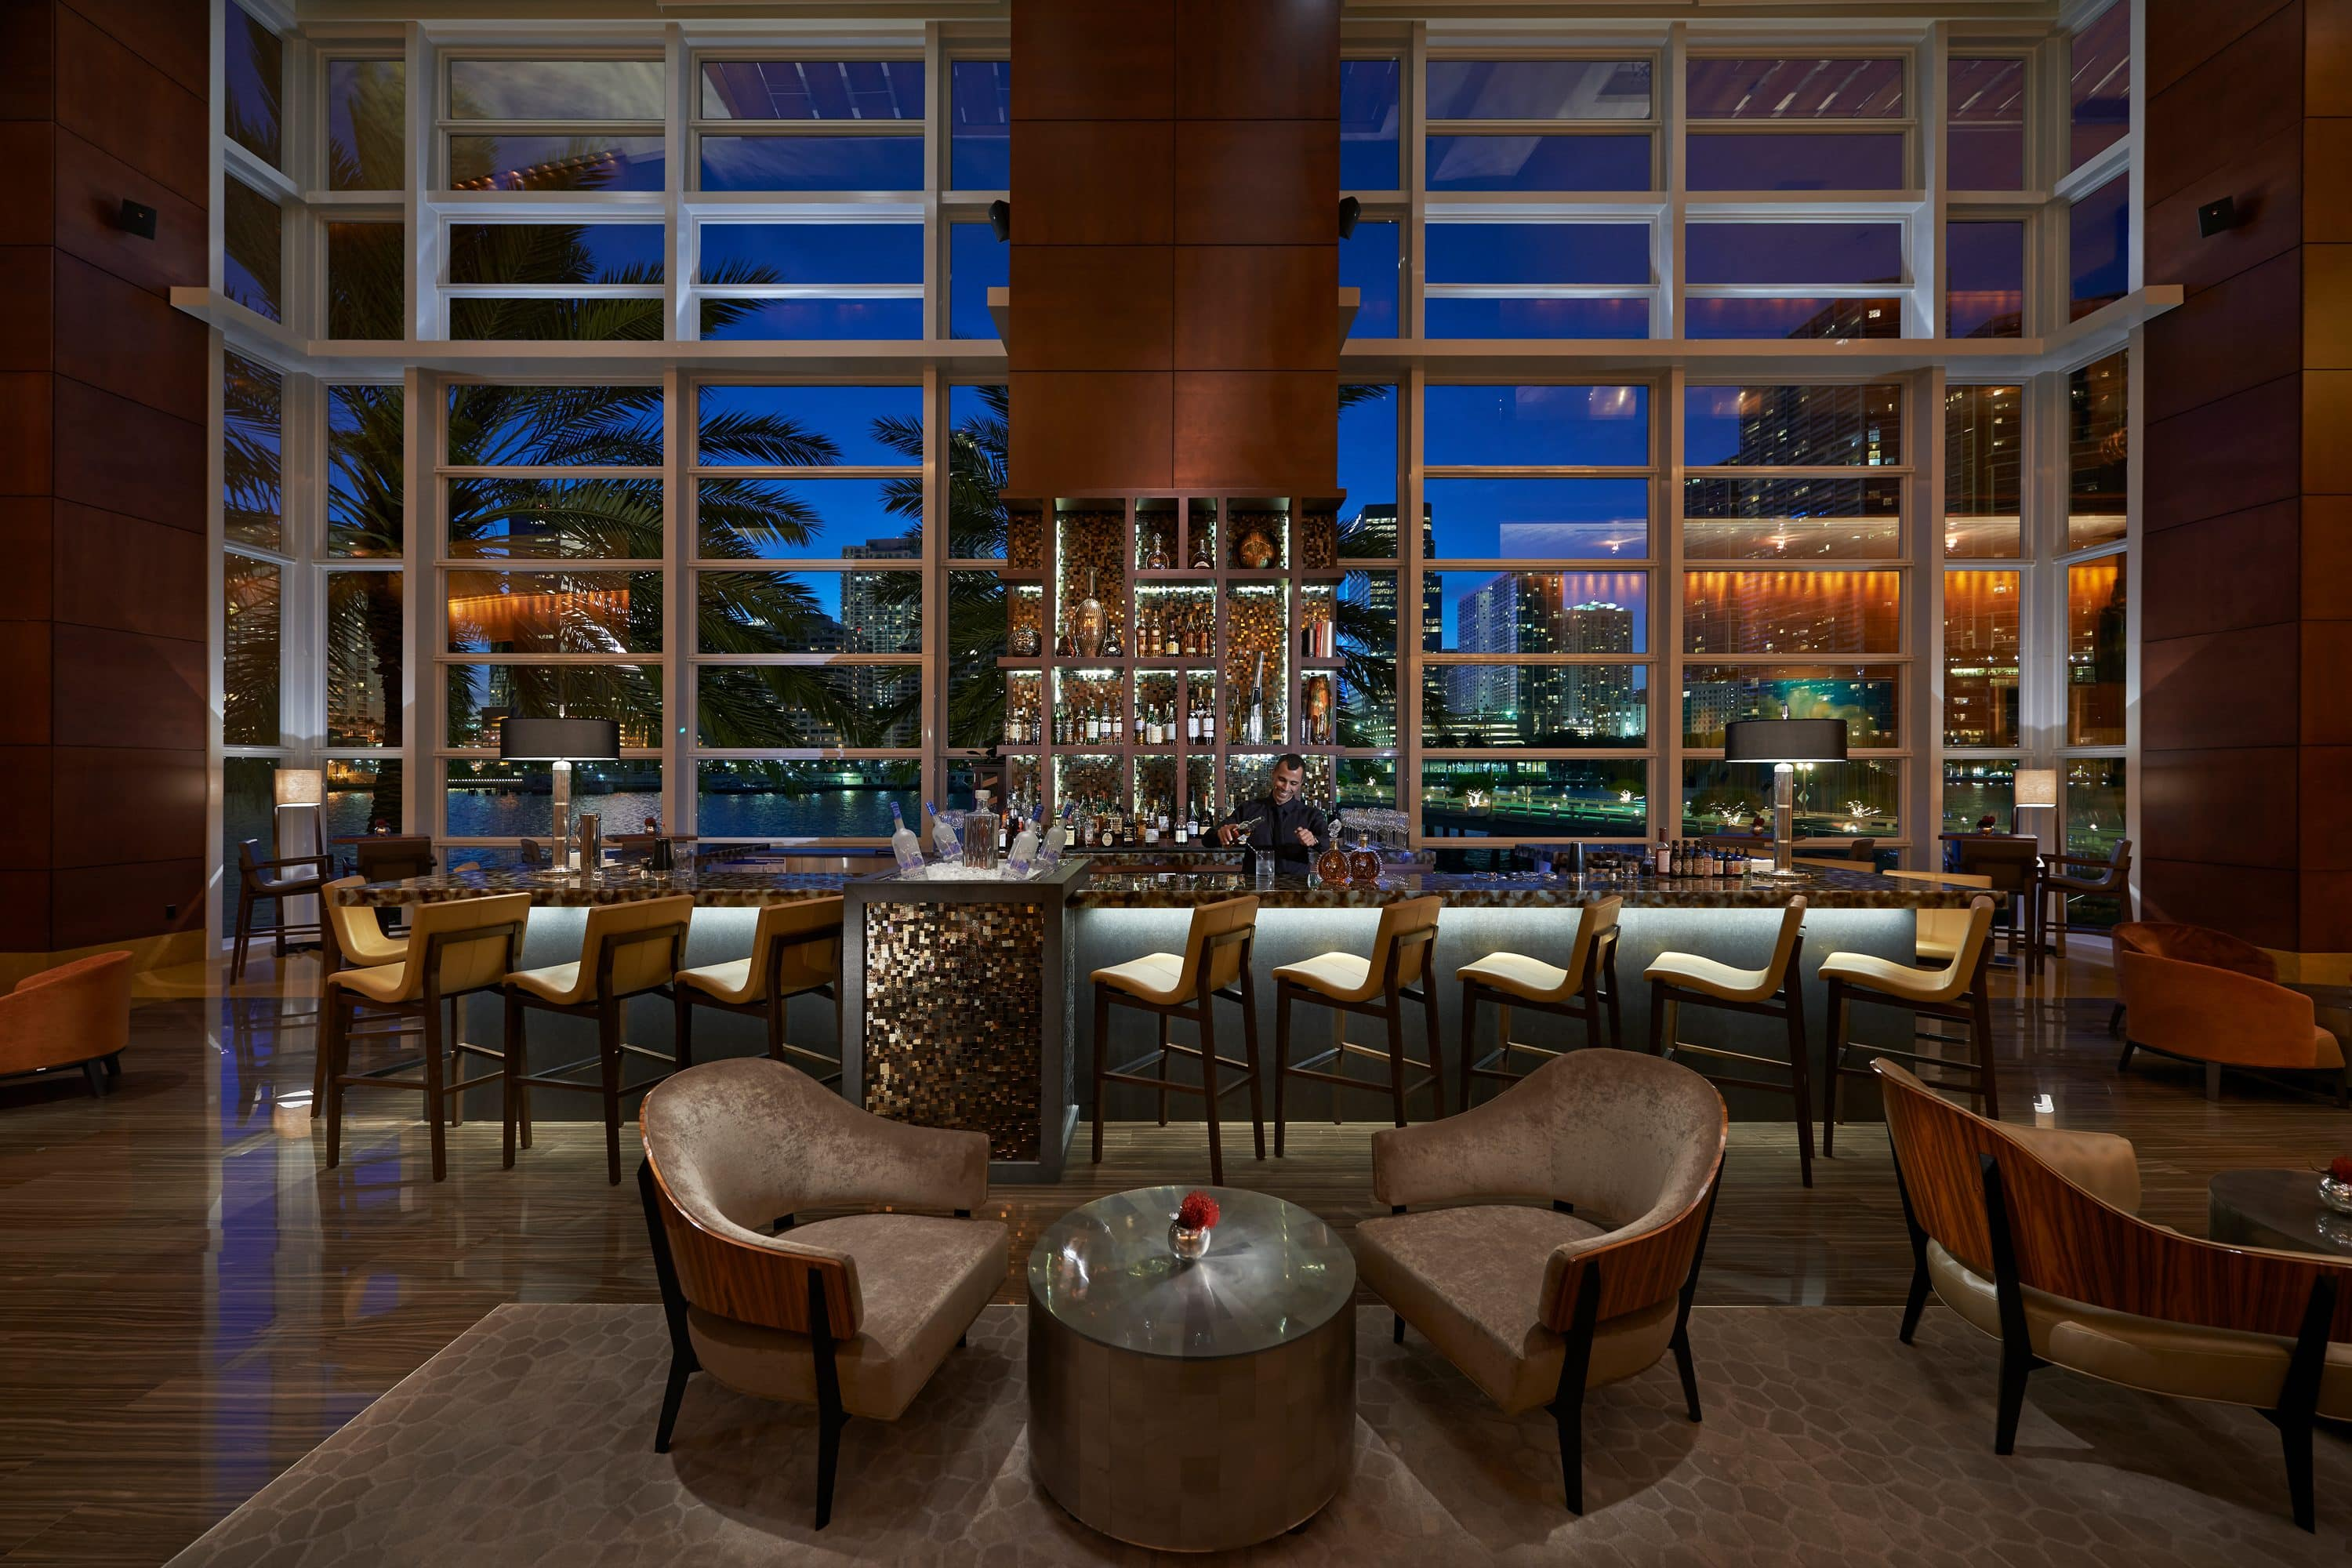 The illuminated bar at MO Bar at Mandarin Oriental, Miami